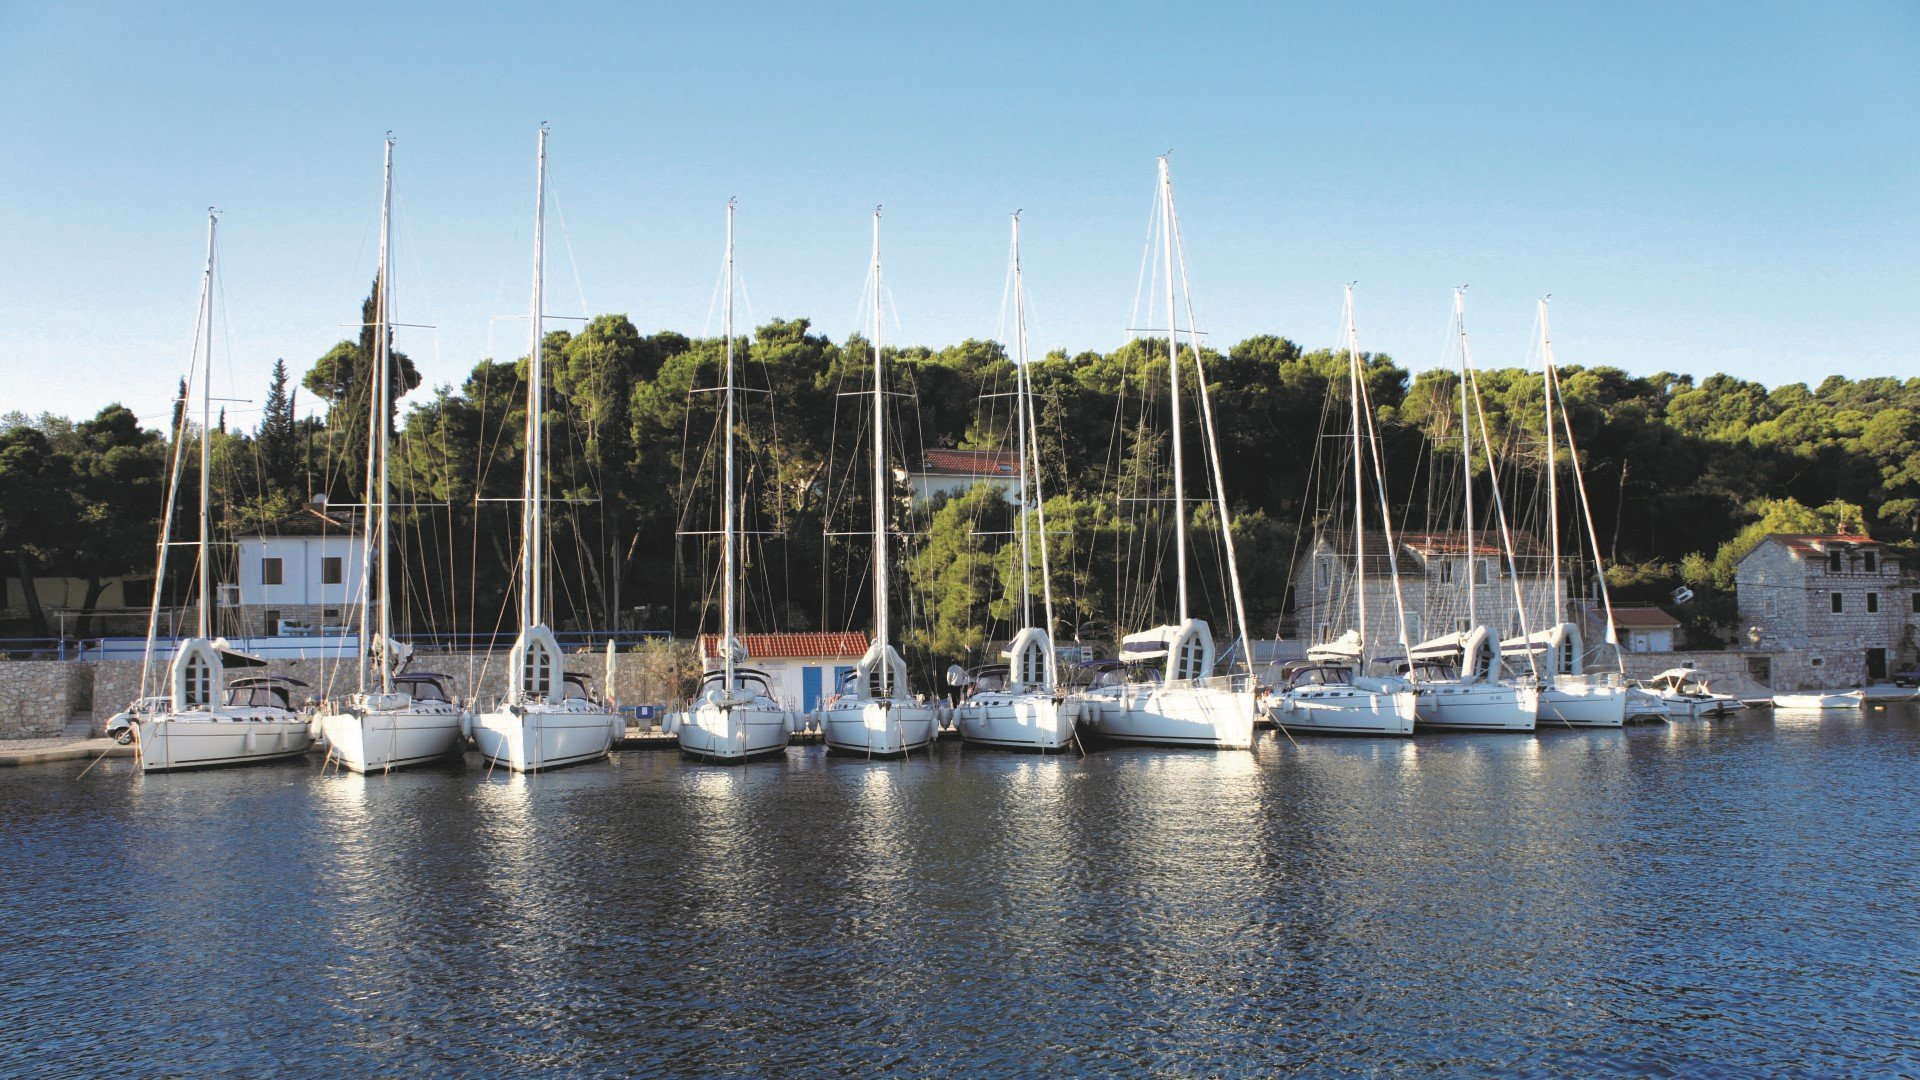 Lagoon 42 (GALAPAGOS) Marina Rogač - sailboats (photo taken 2019) - 3